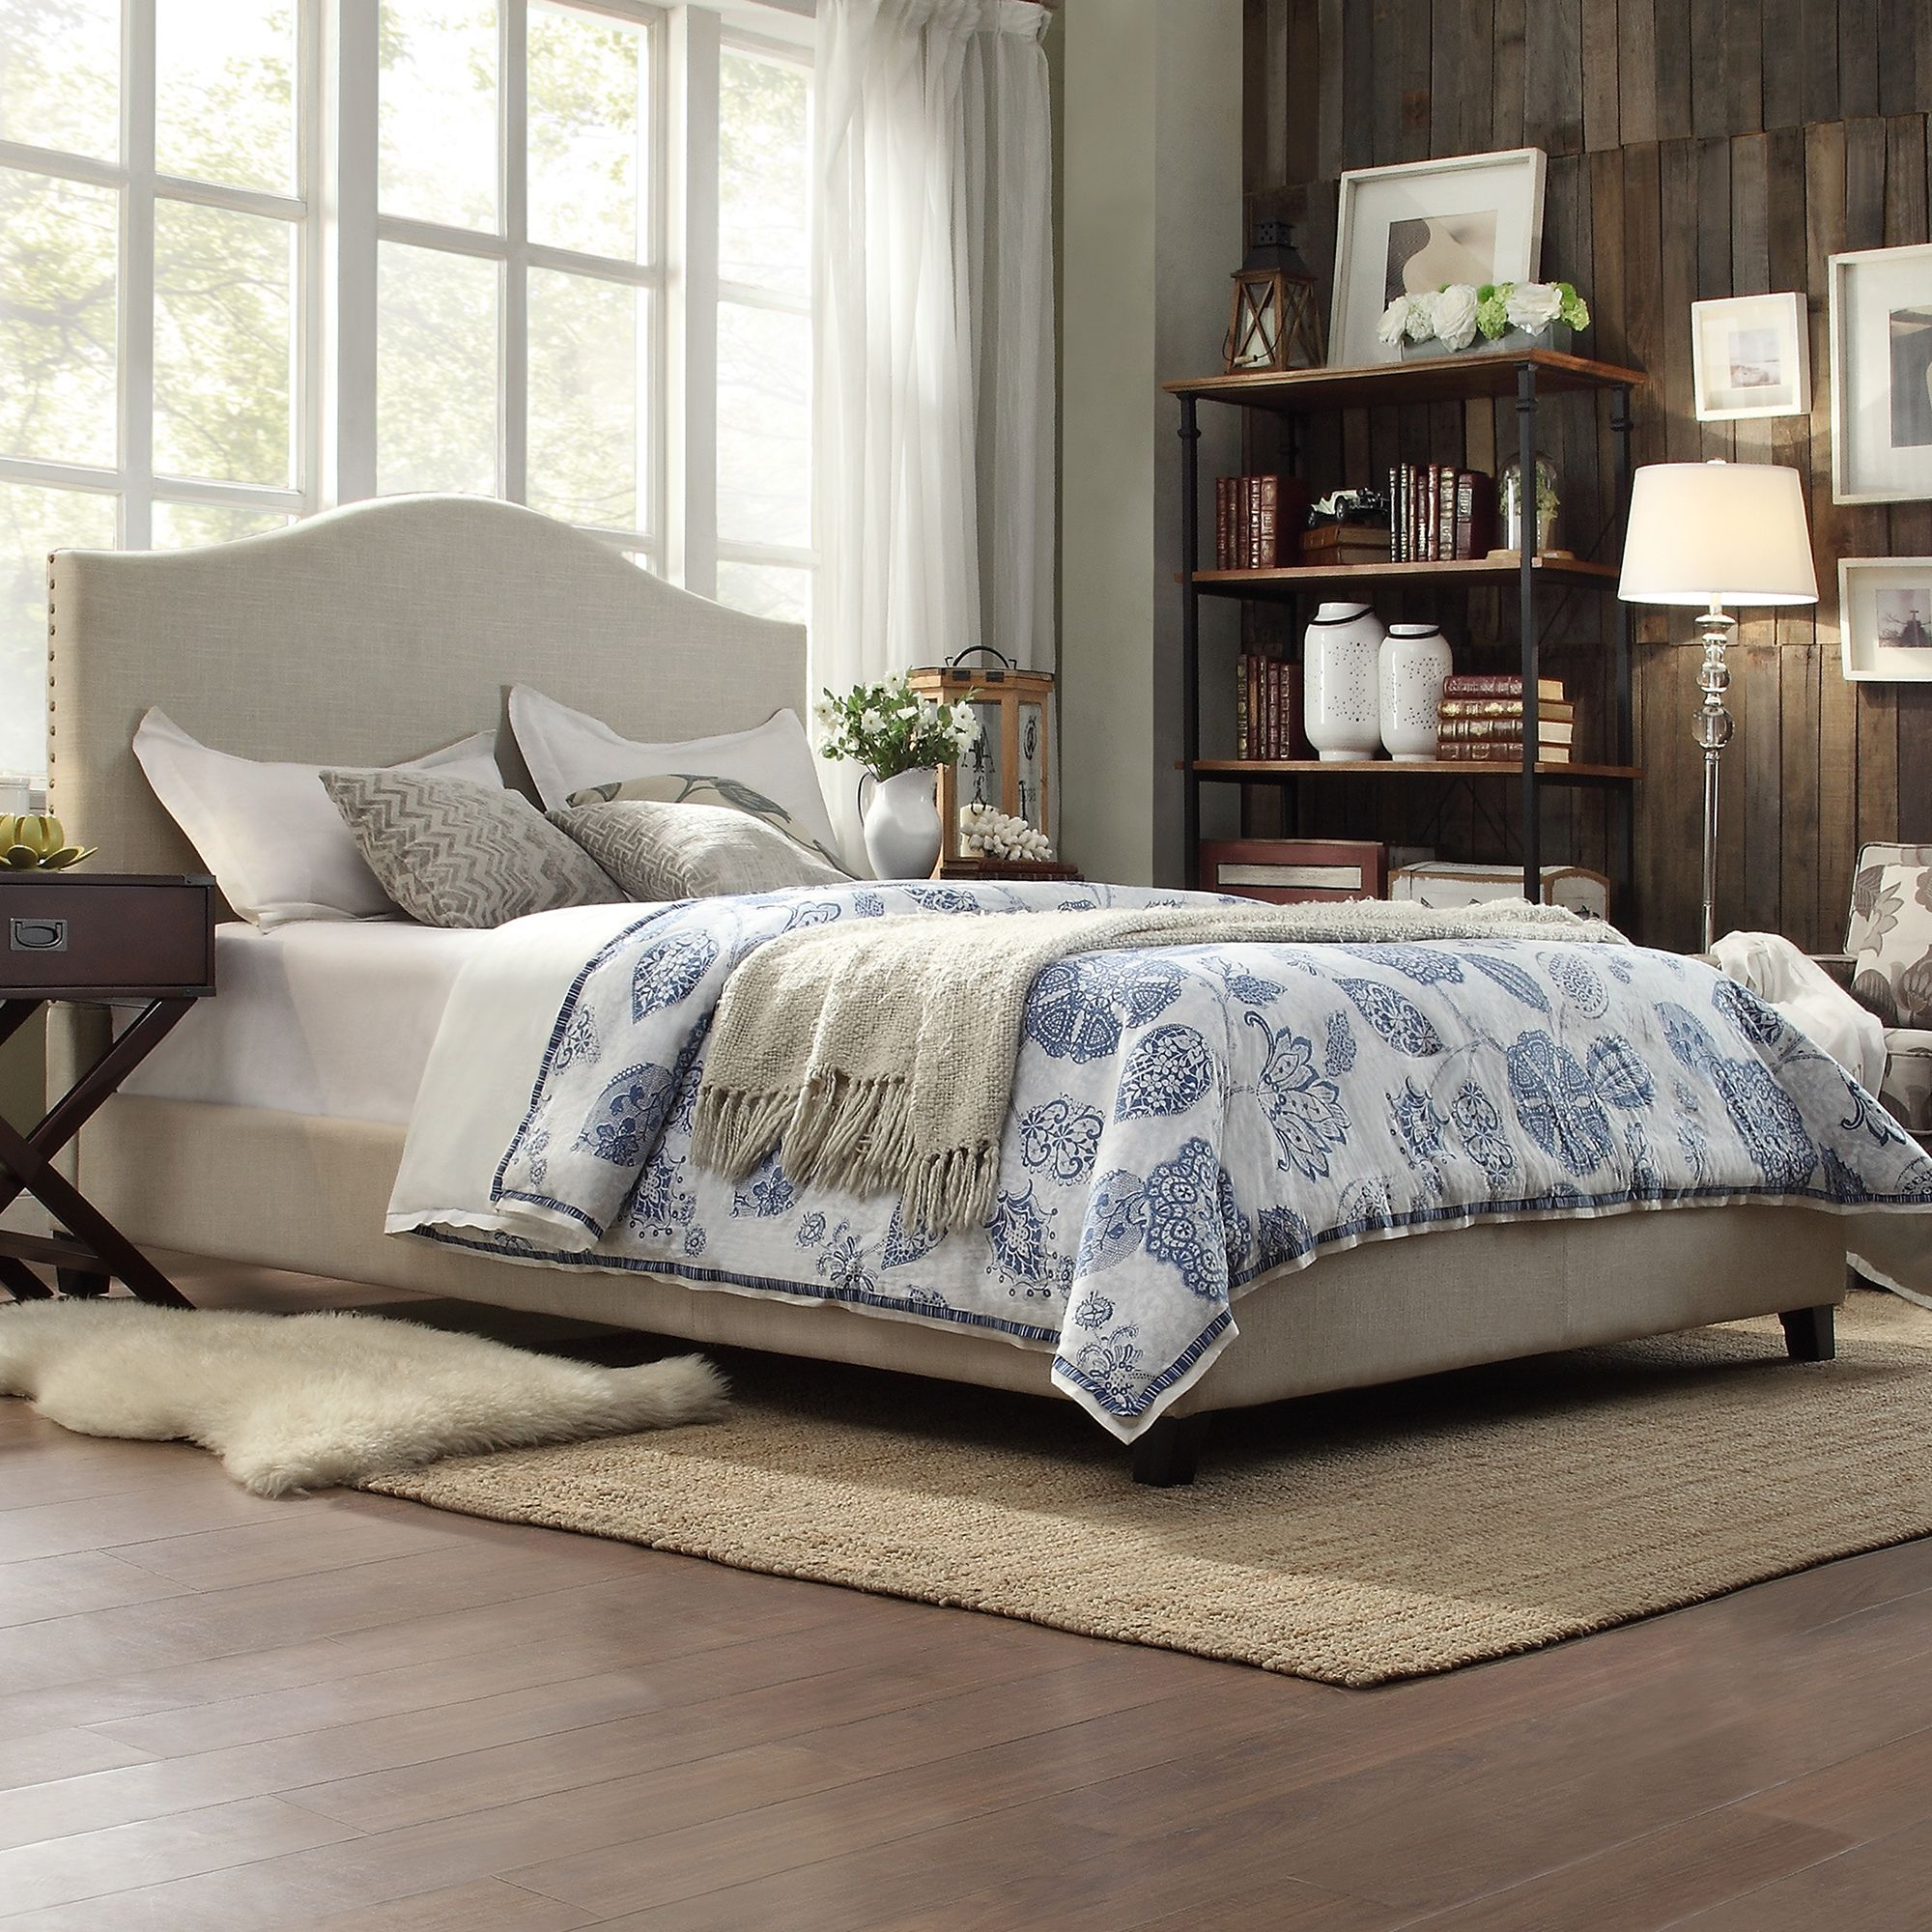 Escape everyday stress and instantly transform your bedroom into a  comfortable sanctuary. Nailheads trim the outer edges of the cushioned  headboard ...